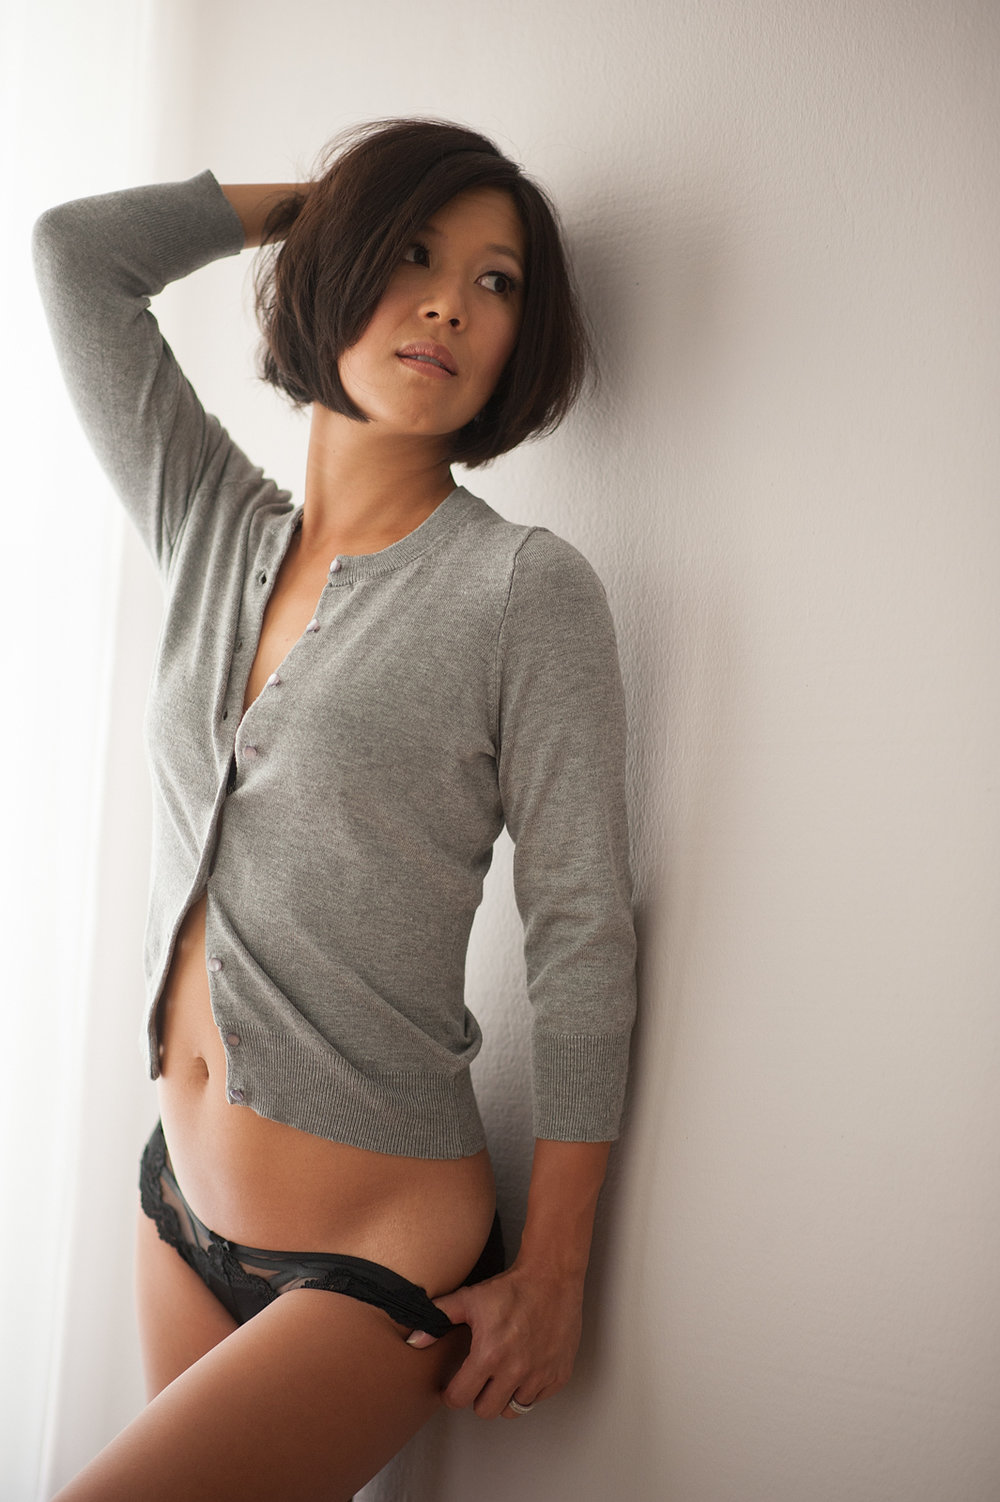 05-sexy-sweater-panties-leaning-wall-pose.jpg